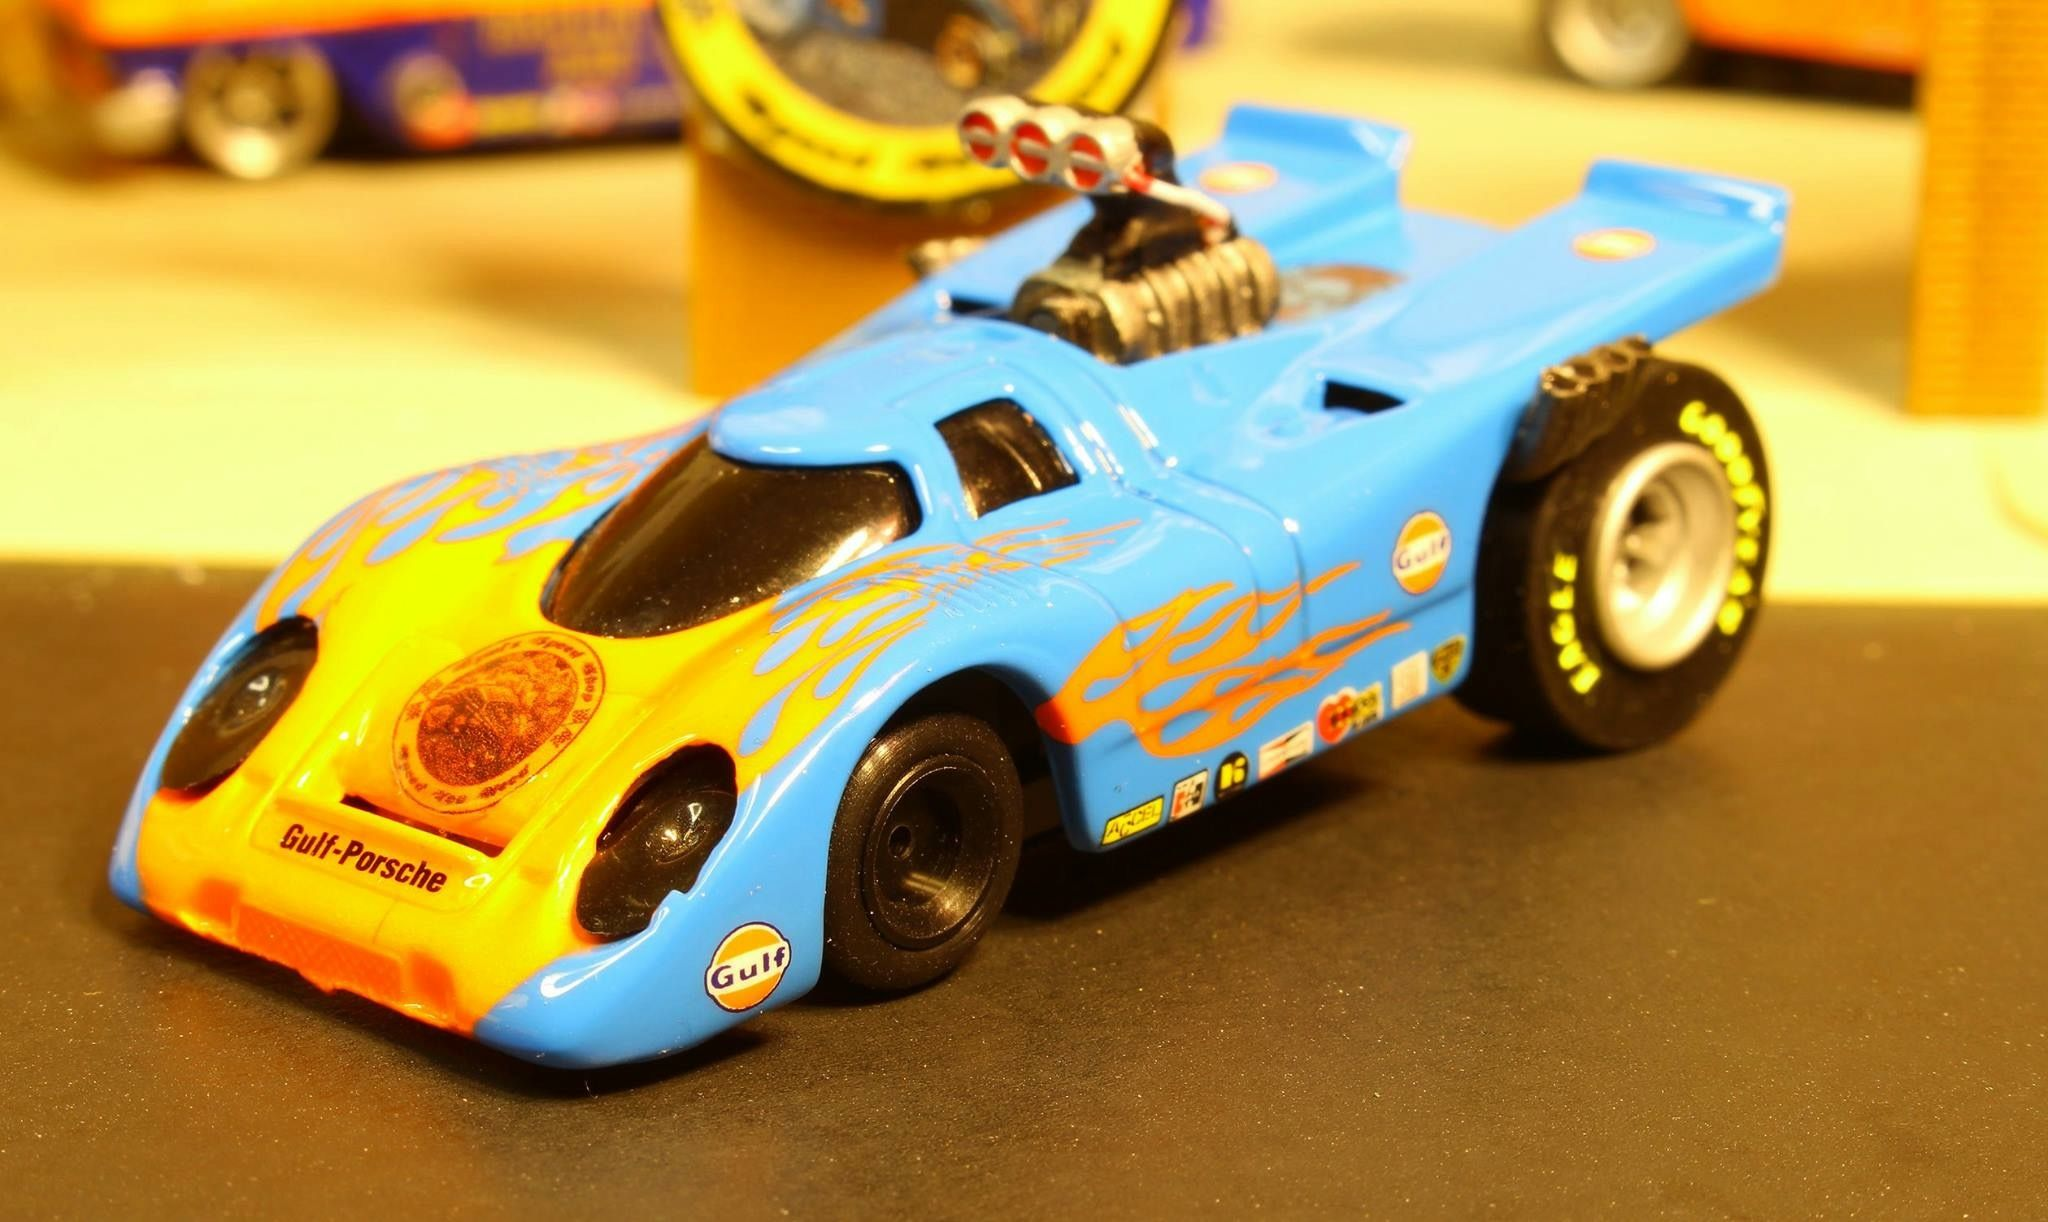 Gymis Speed Shops custom slot cars, he does awesome work in my